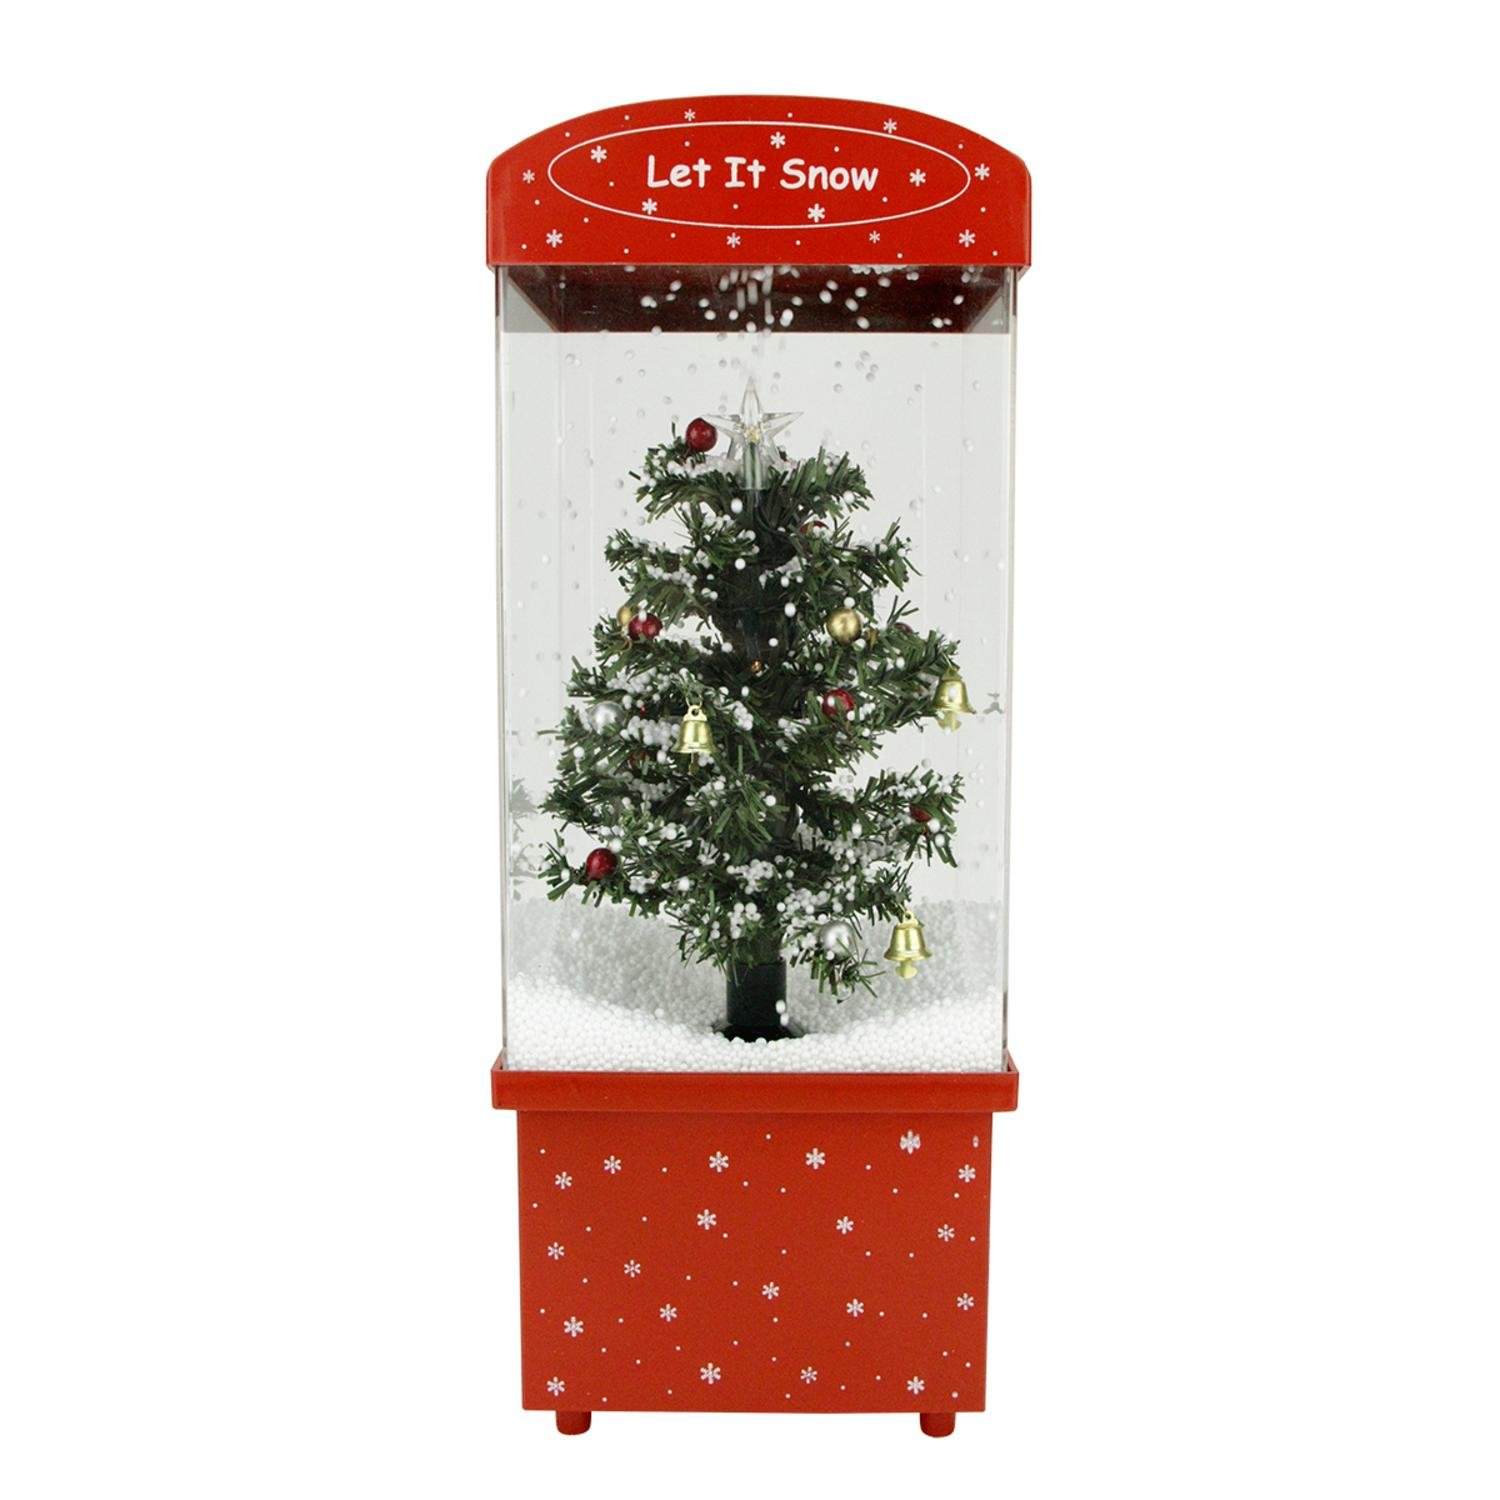 Northlight 16.25'' Lighted Musical Let it Snow Christmas Tree Snow Globe Glitterdome